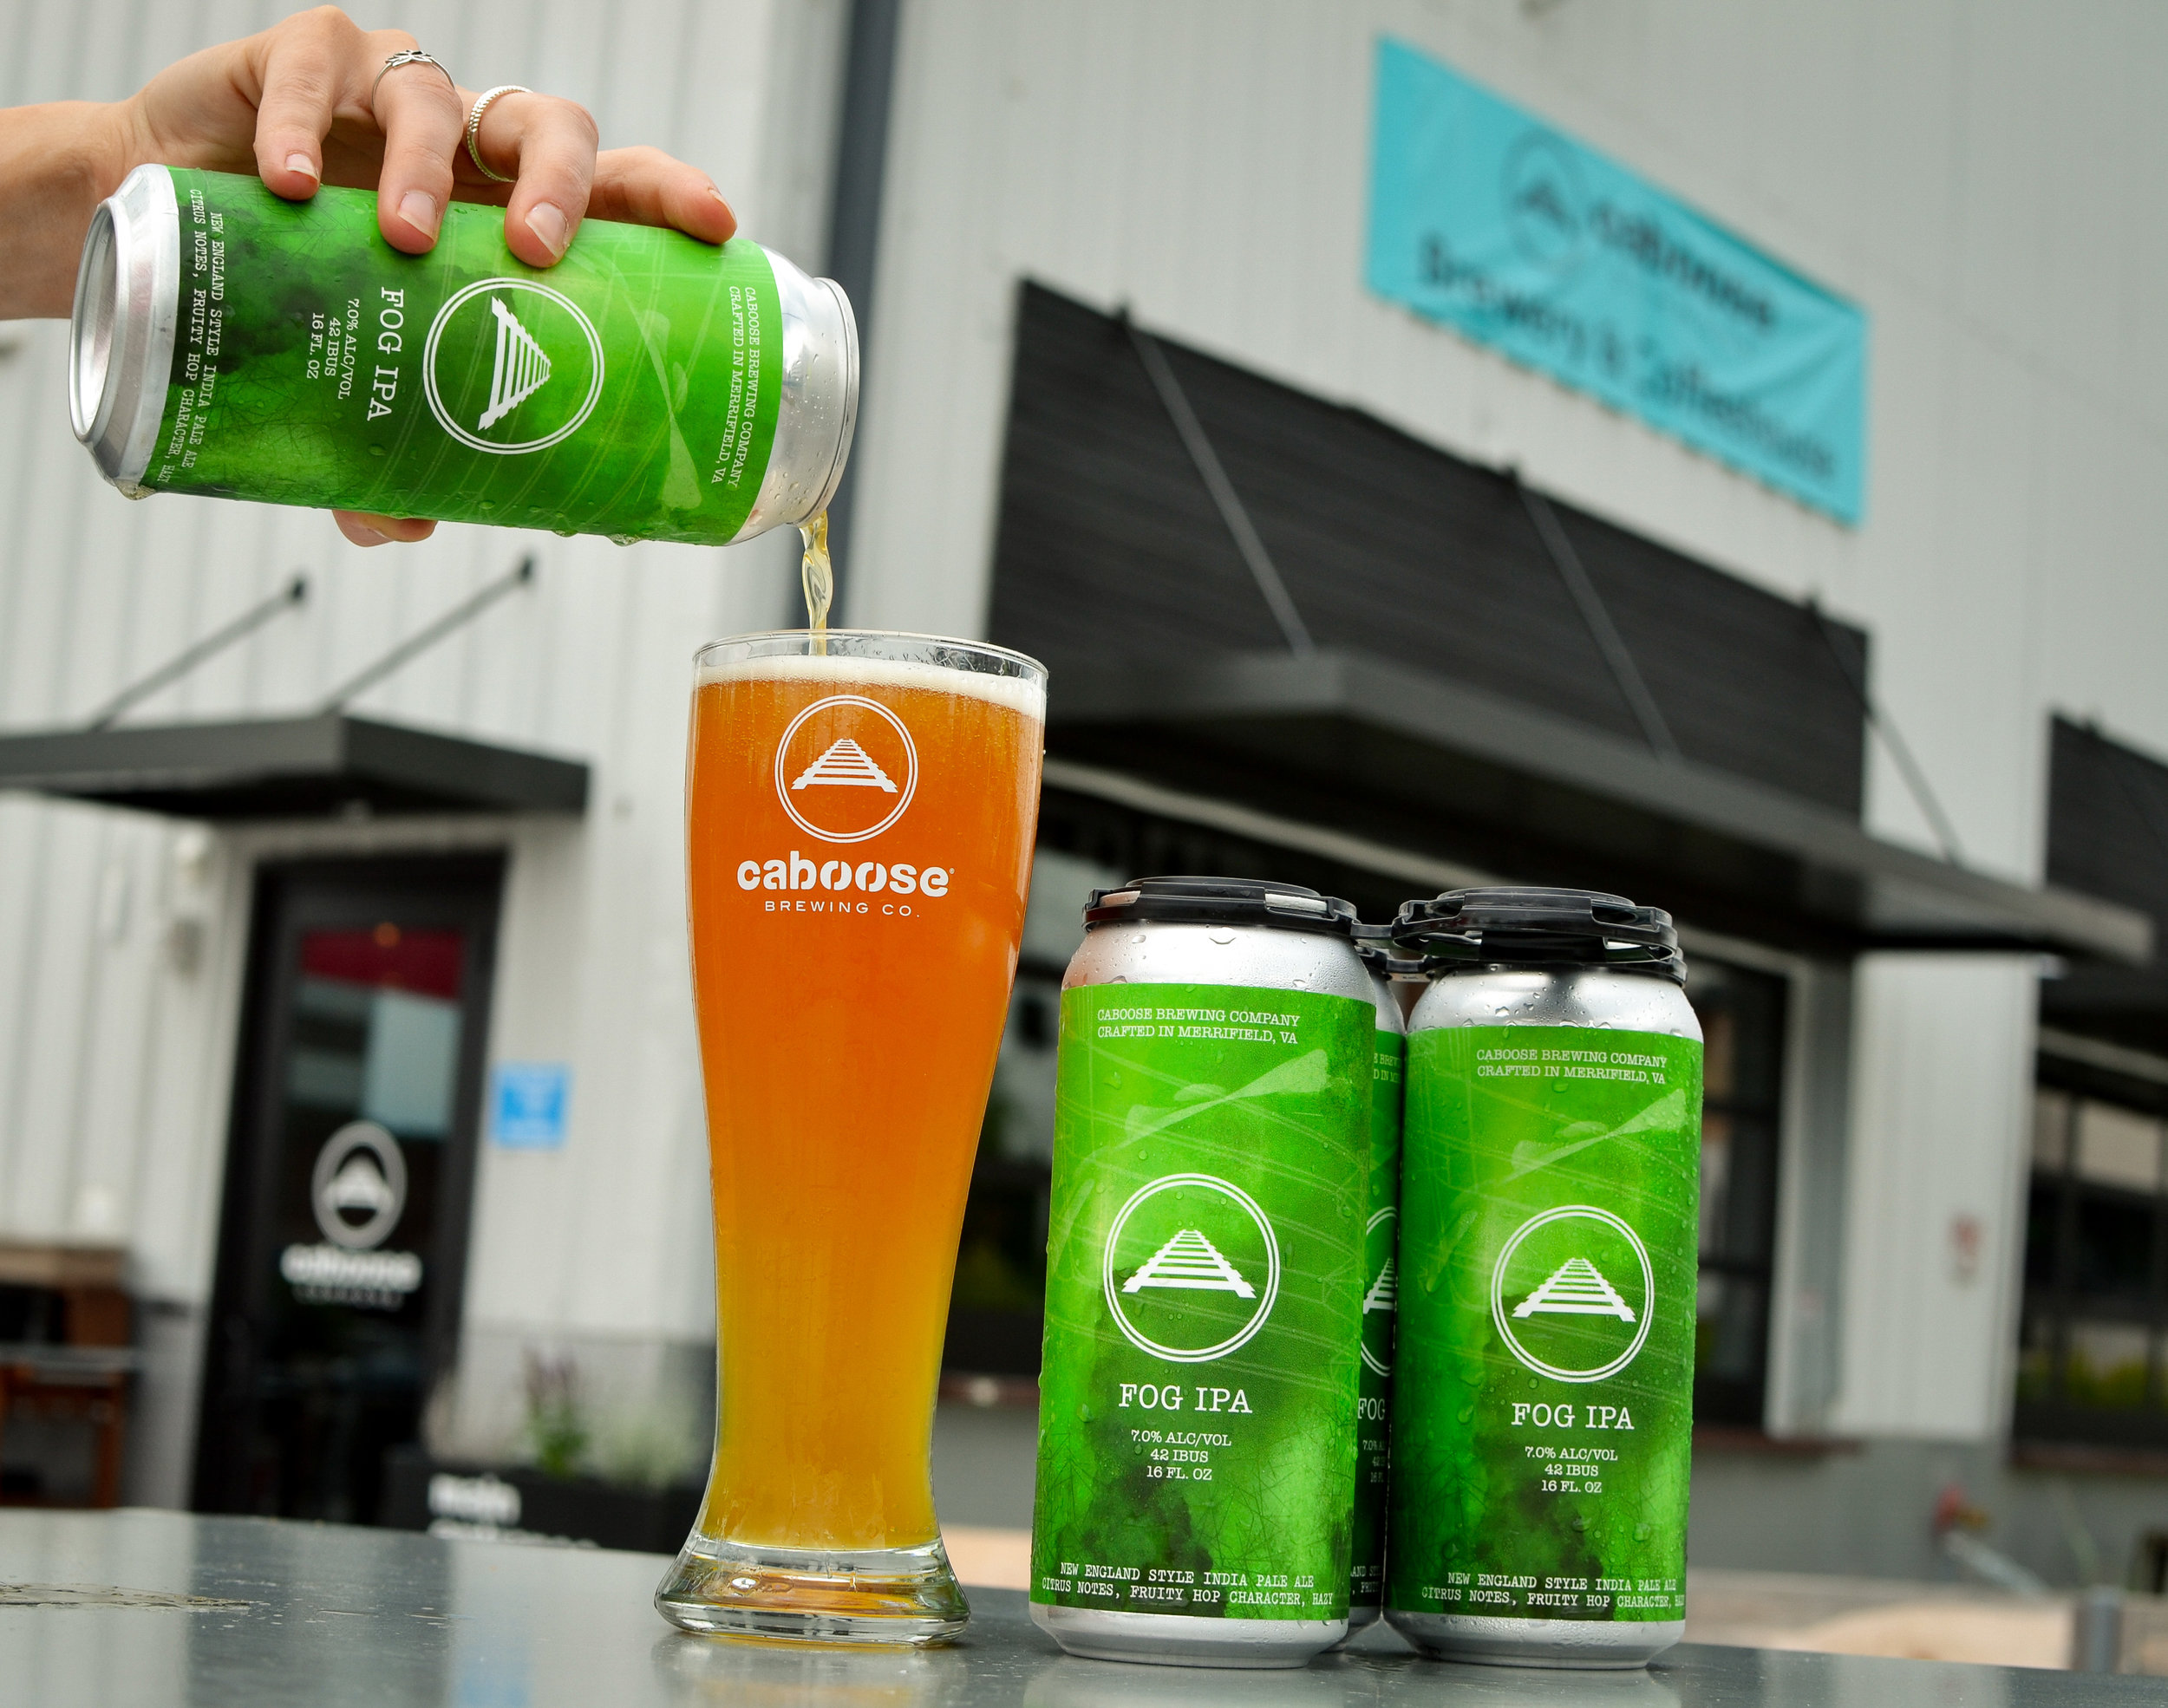 Fog IPA (4-pack, 16 oz cans)